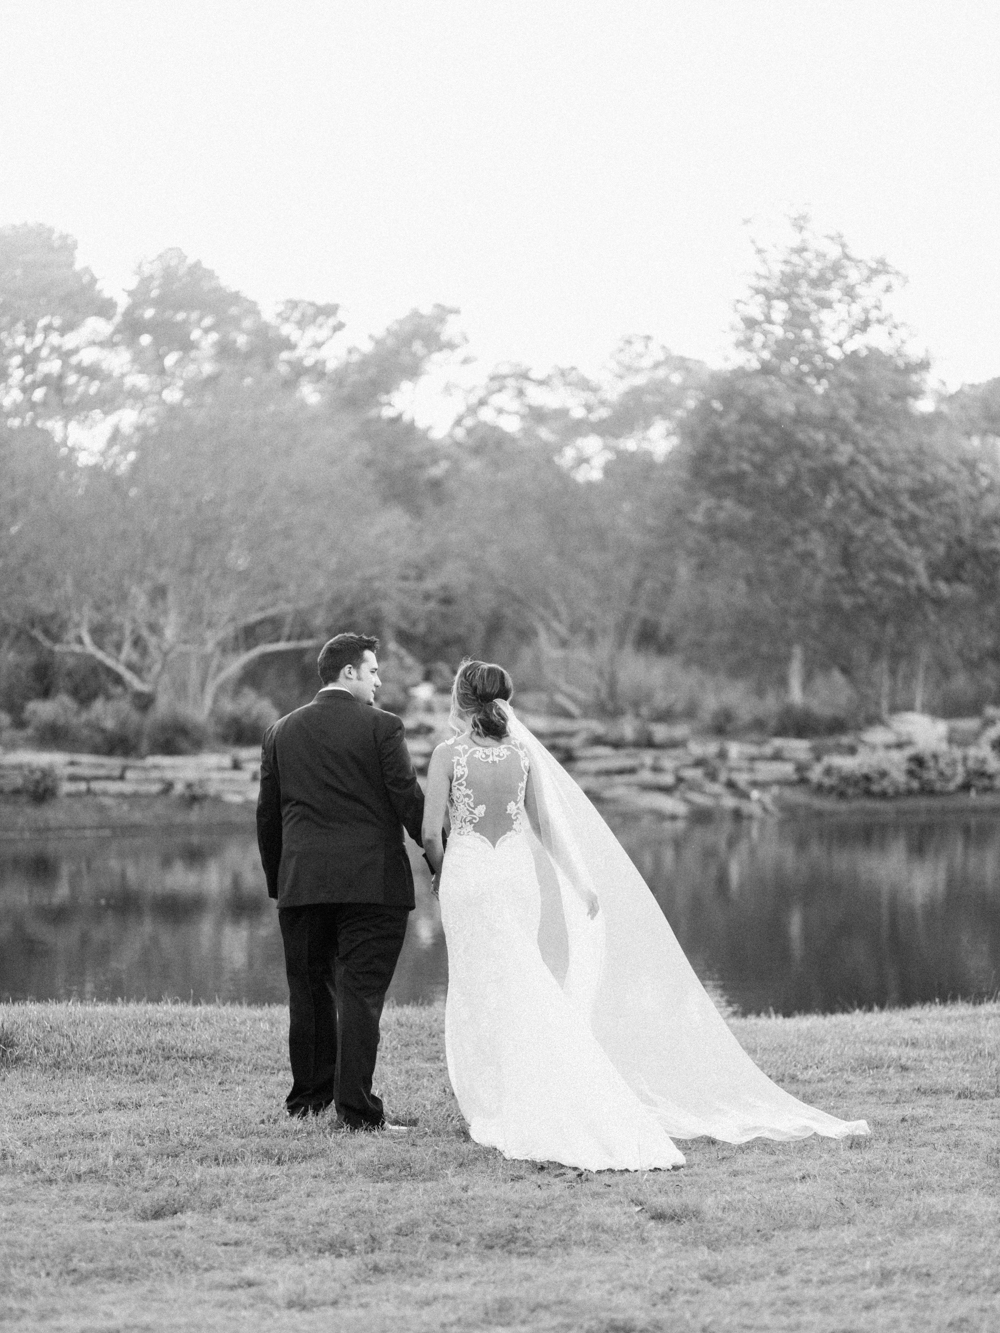 Christine Gosch - destination film photographer - houston wedding photographer - fine art film photographer - elopement photographer - destination wedding - understated wedding - simple beautiful wedding photography-143.jpg